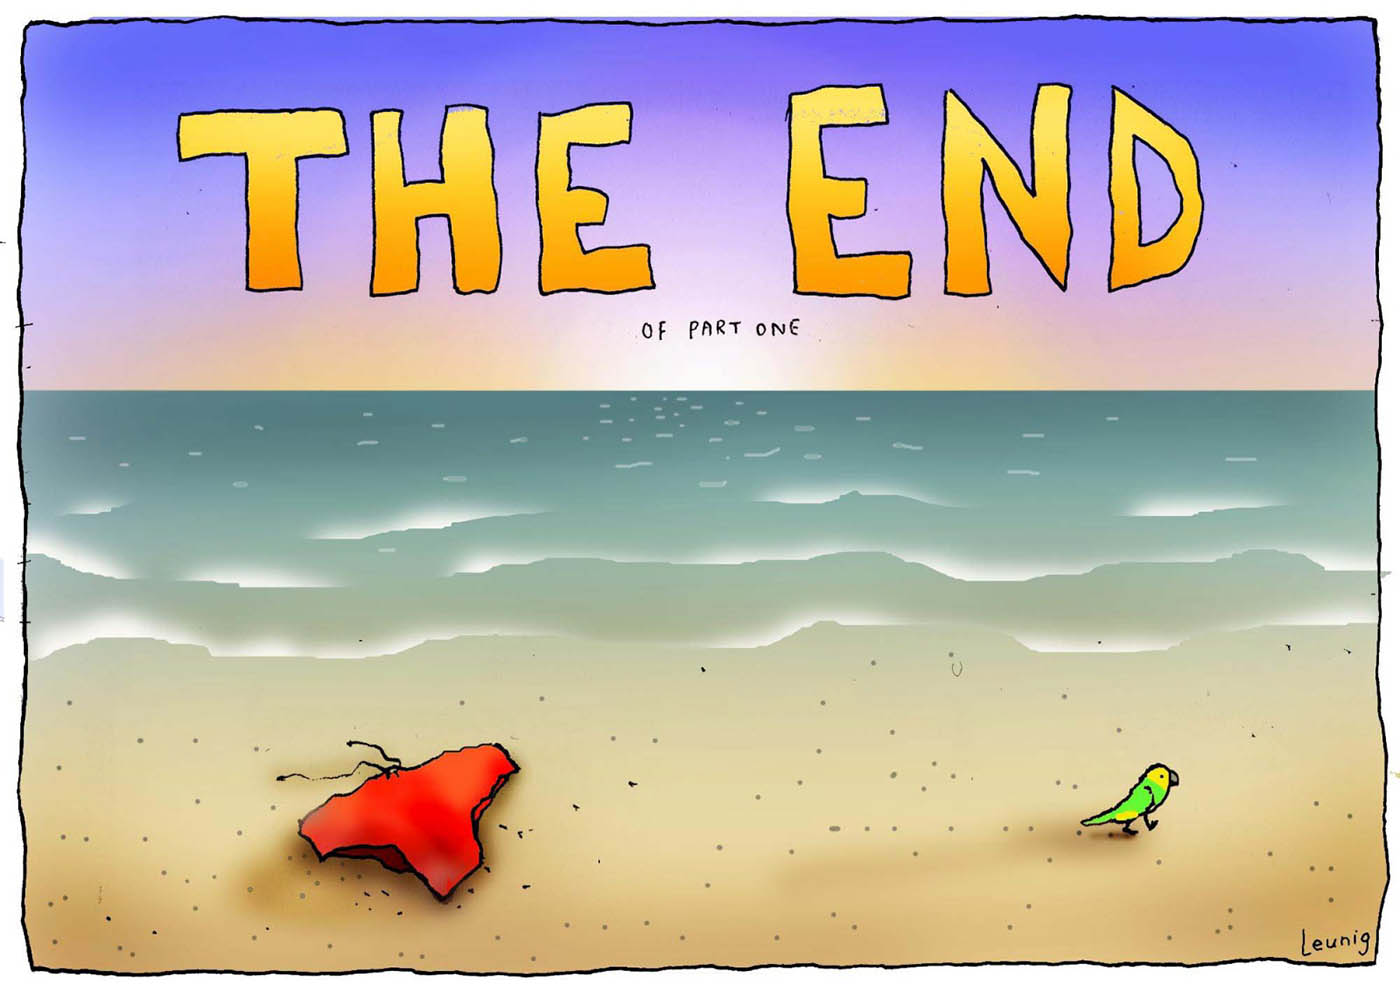 A colour cartoon depicting a beach scene, where the water and sand meet. To the left on the sand is a pair of red swimmers. To the right, a yellow and green budgerigar walks away from the swimmers. Written above the horizon, in large yellow letters, is 'THE END'. Under this, in much smaller characters, is written 'Of part one'.  - click to view larger image